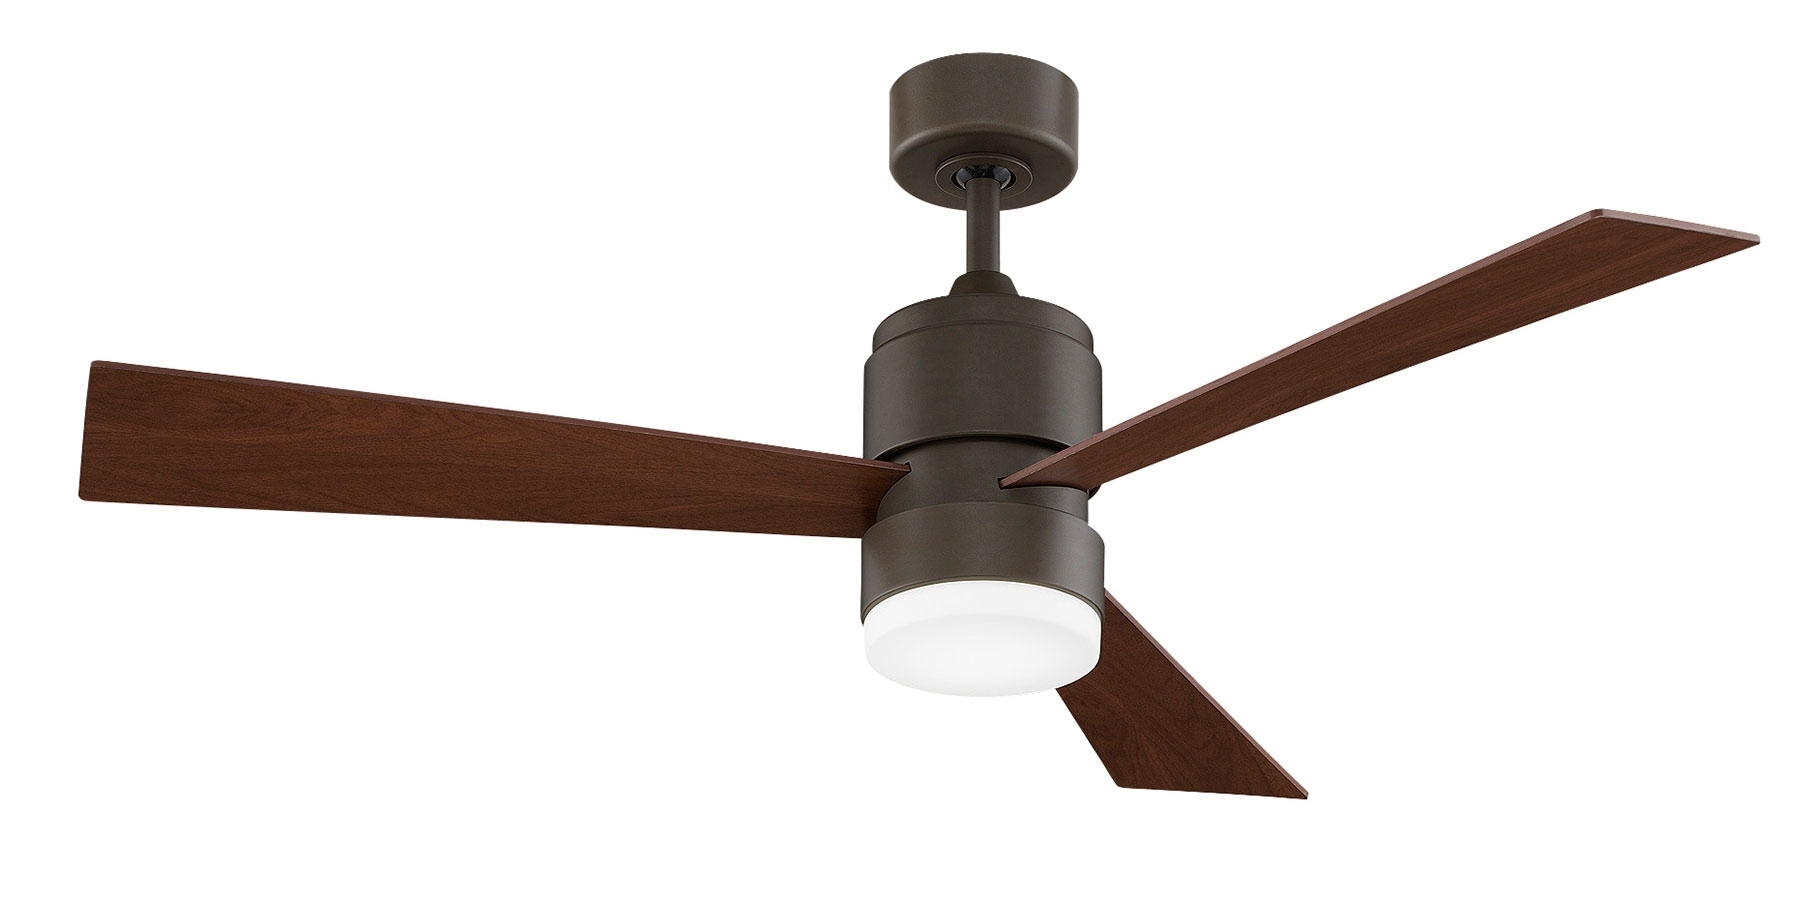 Light : Ceiling Fans With Led Lights Zonix Fan Havells Areole Blade Throughout Famous Outdoor Ceiling Fans With Led Lights (View 10 of 20)